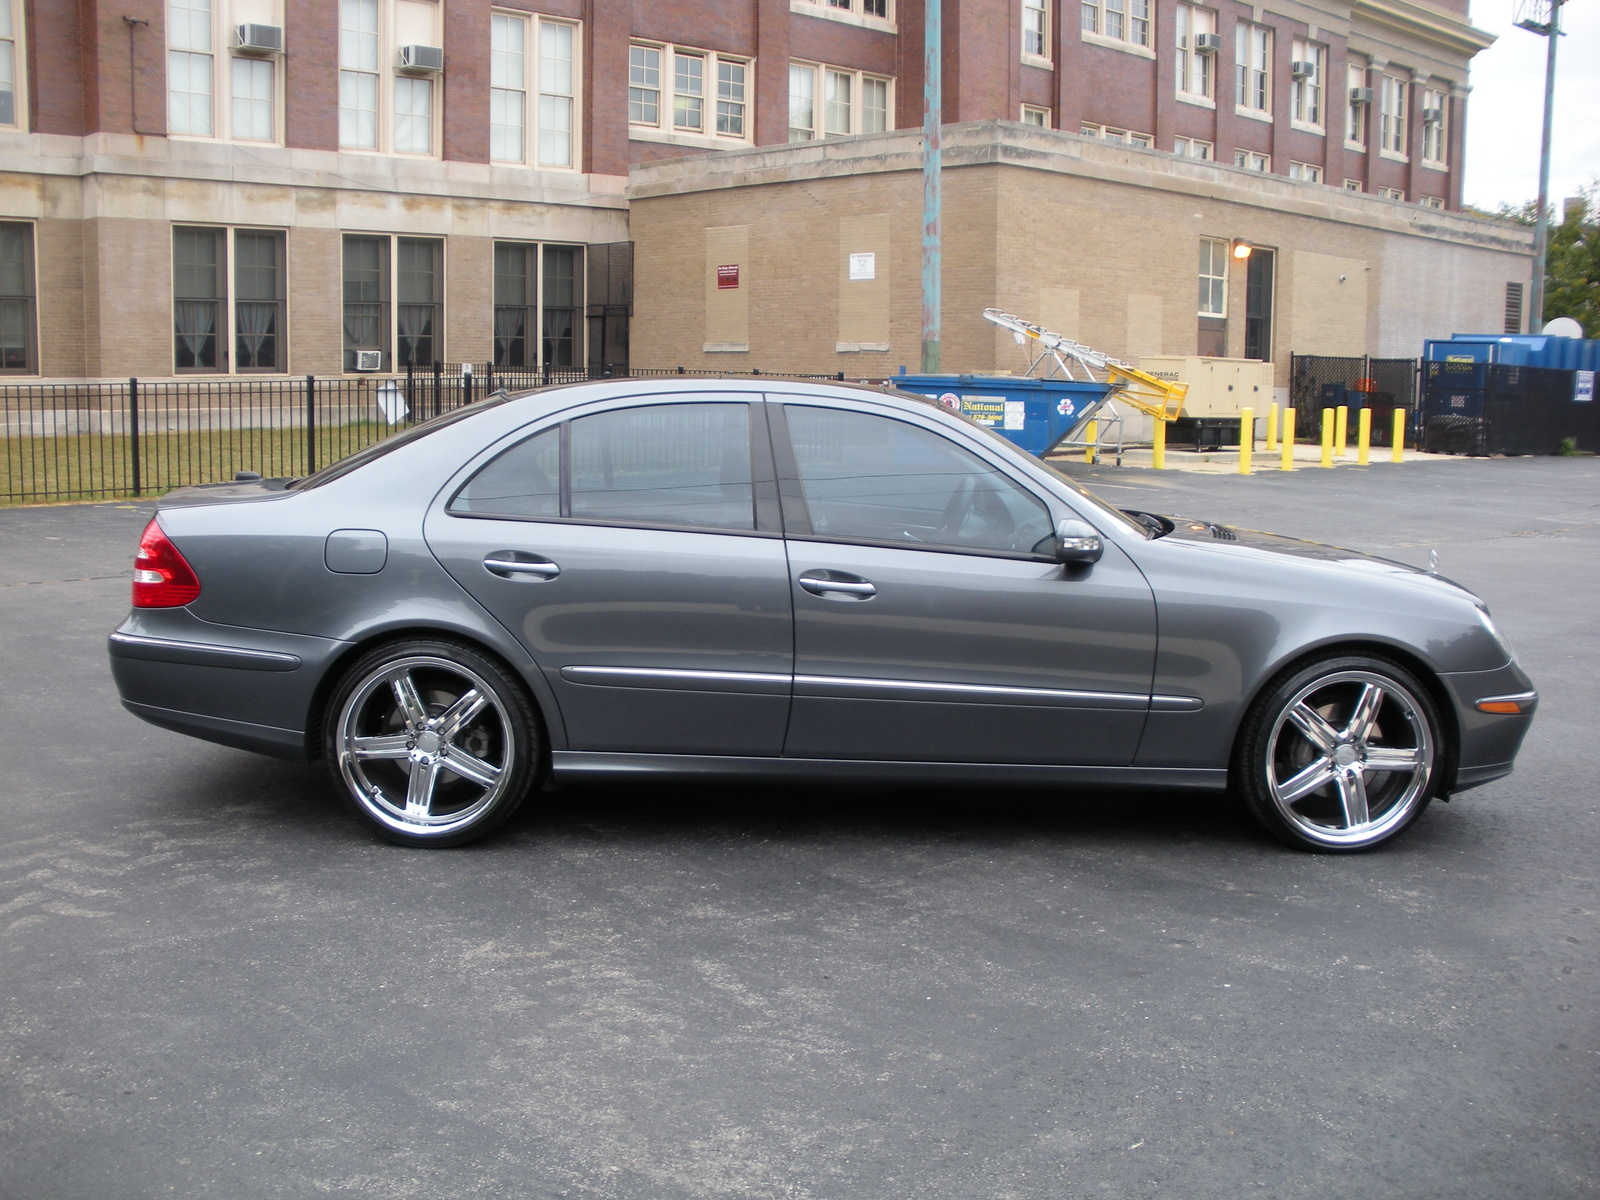 2005 mercedes benz e class exterior pictures cargurus for 2005 e320 mercedes benz